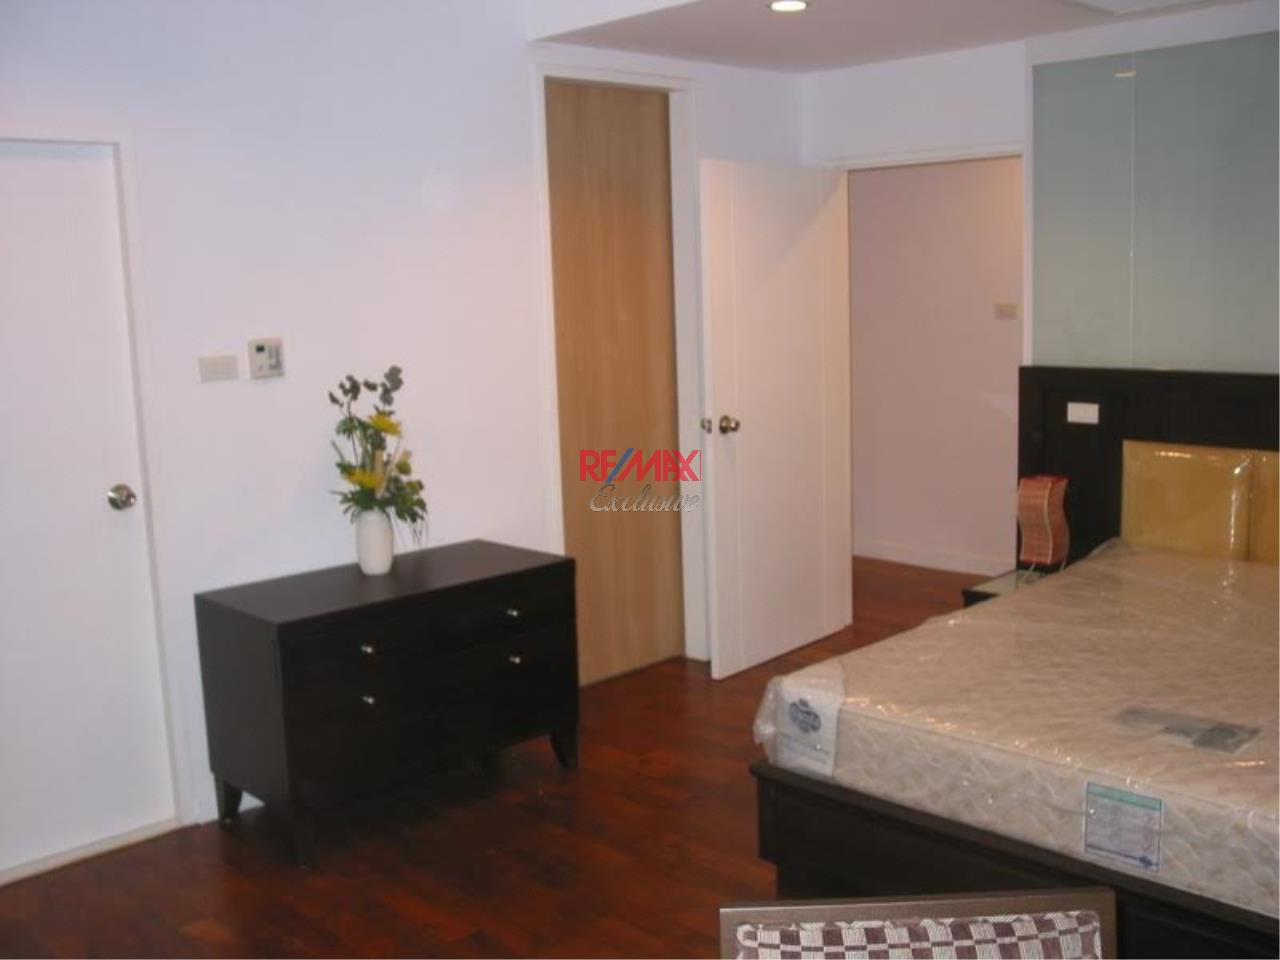 RE/MAX Exclusive Agency's 2 Bedrooms at Baan Siri24 For Rent 65,000 THB  4